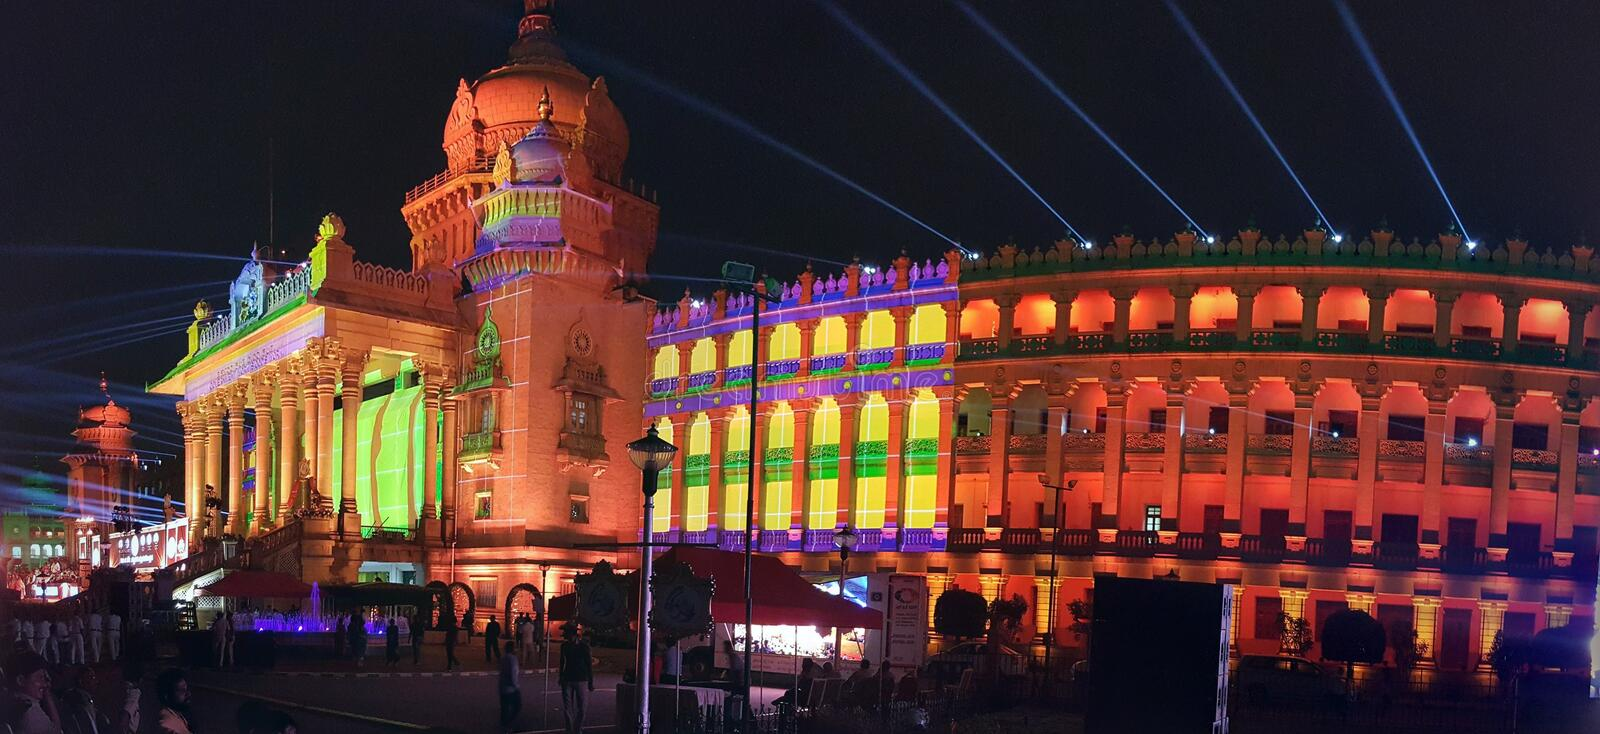 Vidhana soudha with search lights for new leadership everywhere. Vidhana soudha with search lights everywhere, golden, karnataka, landmark, bengaluru, politics stock photo